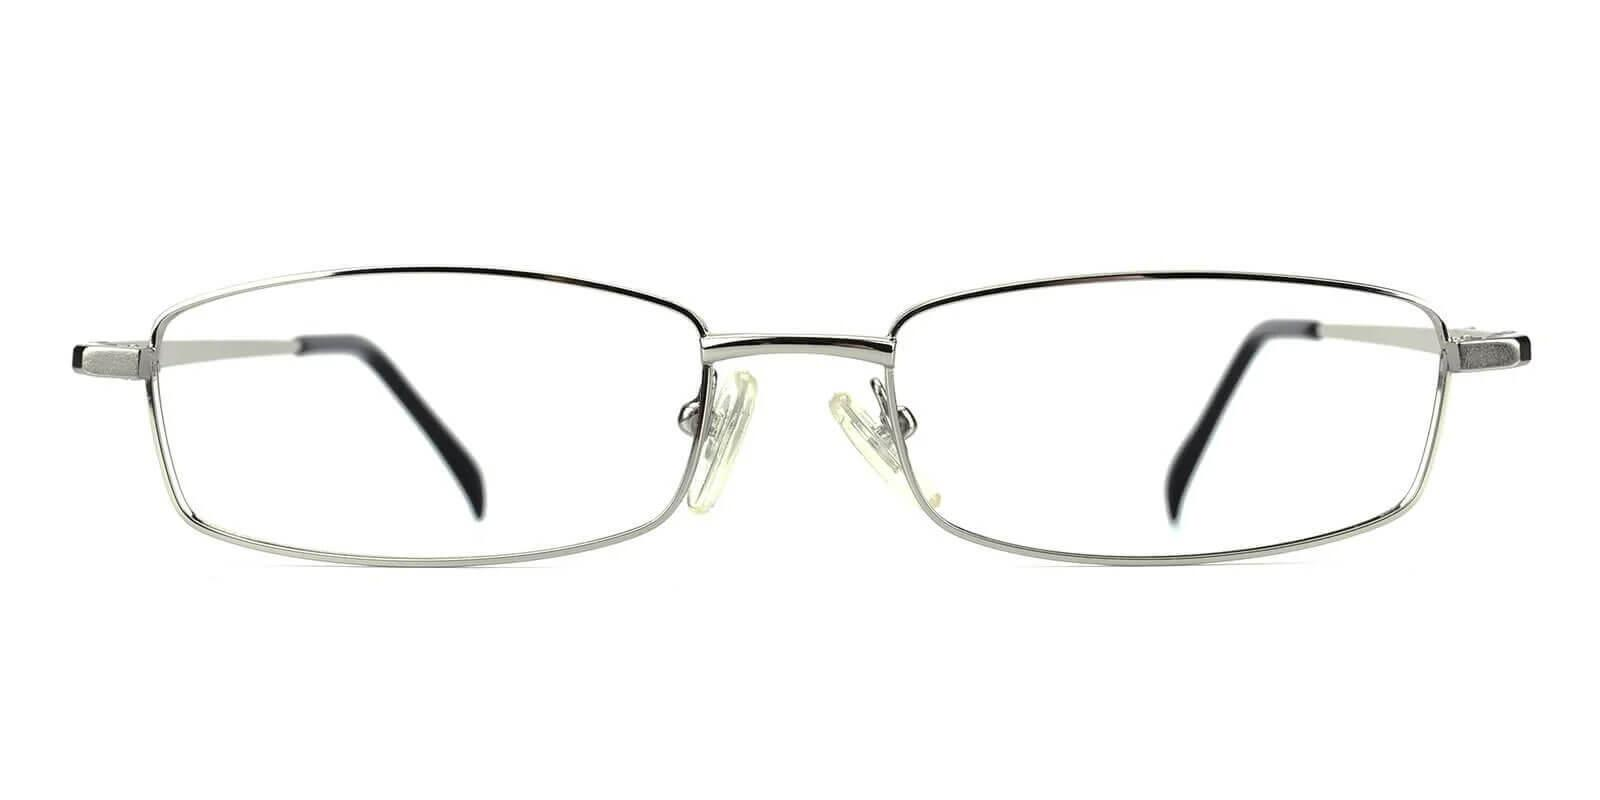 Gihon Silver Metal Eyeglasses , NosePads Frames from ABBE Glasses